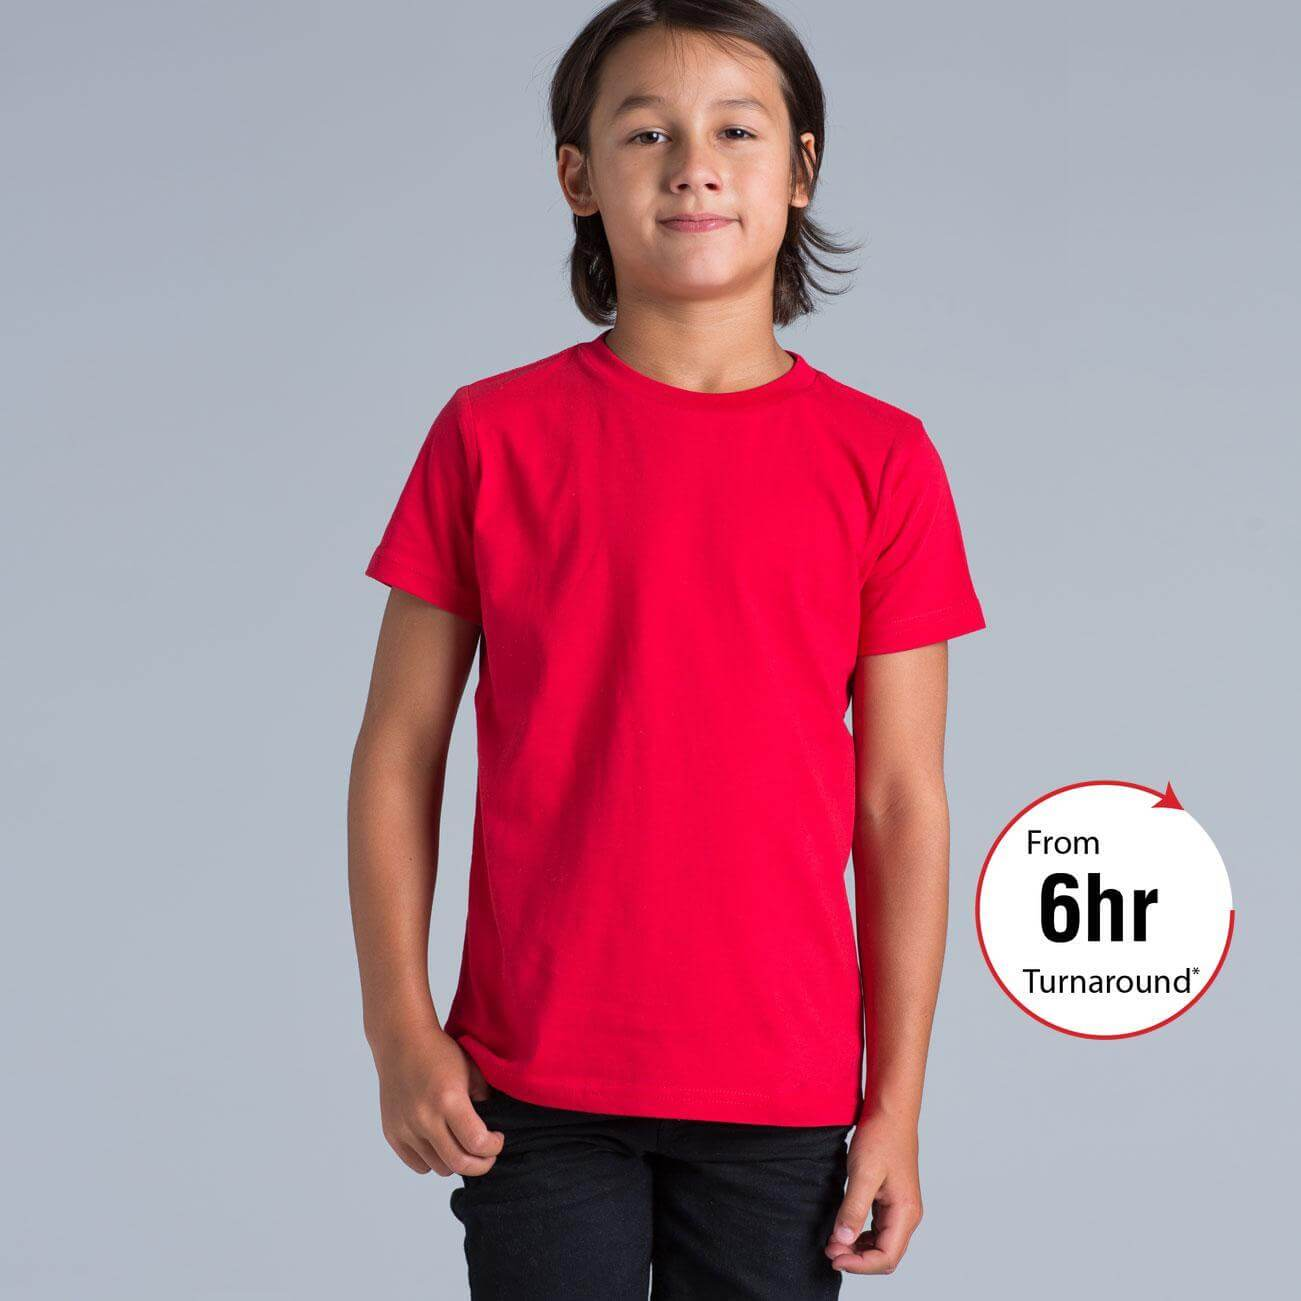 All Your T Shirt Apparel Needs For Business Sports And Personal Gt Women39s Tshirts Tops Couple Personalized Tee 3006 Youth Front 1